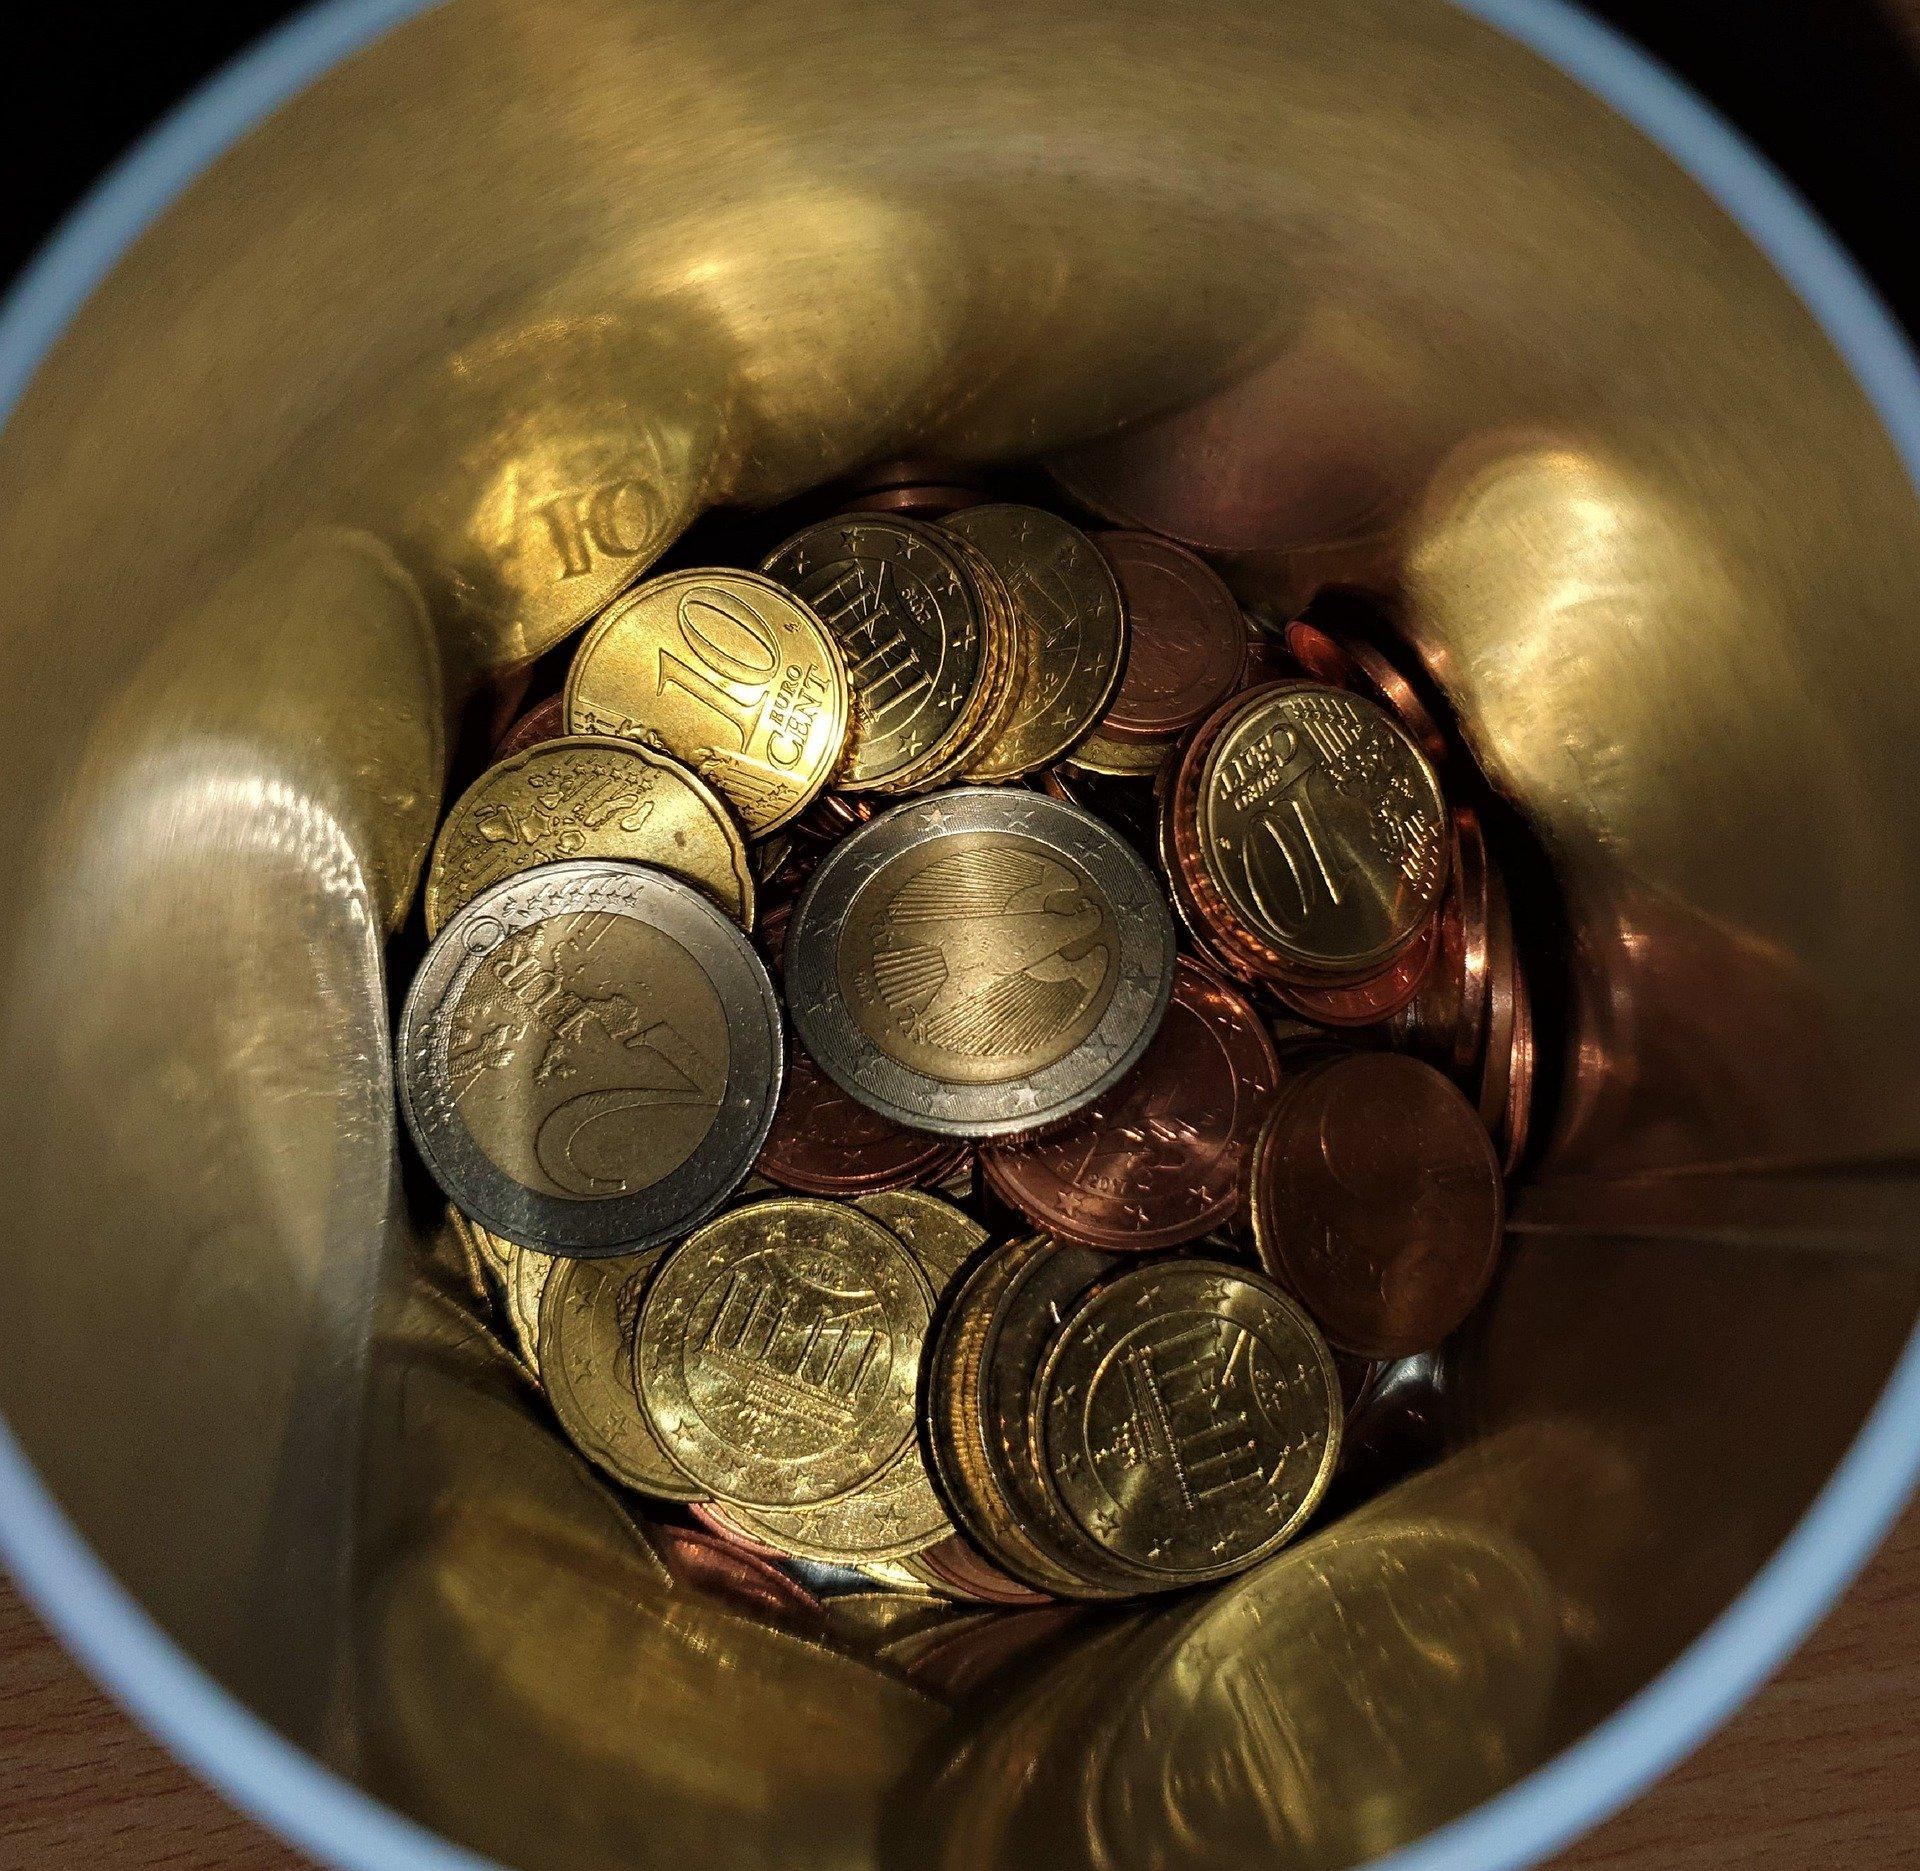 money-box-with-small-money-4911966_1920 (c) René Schué auf Pixabay